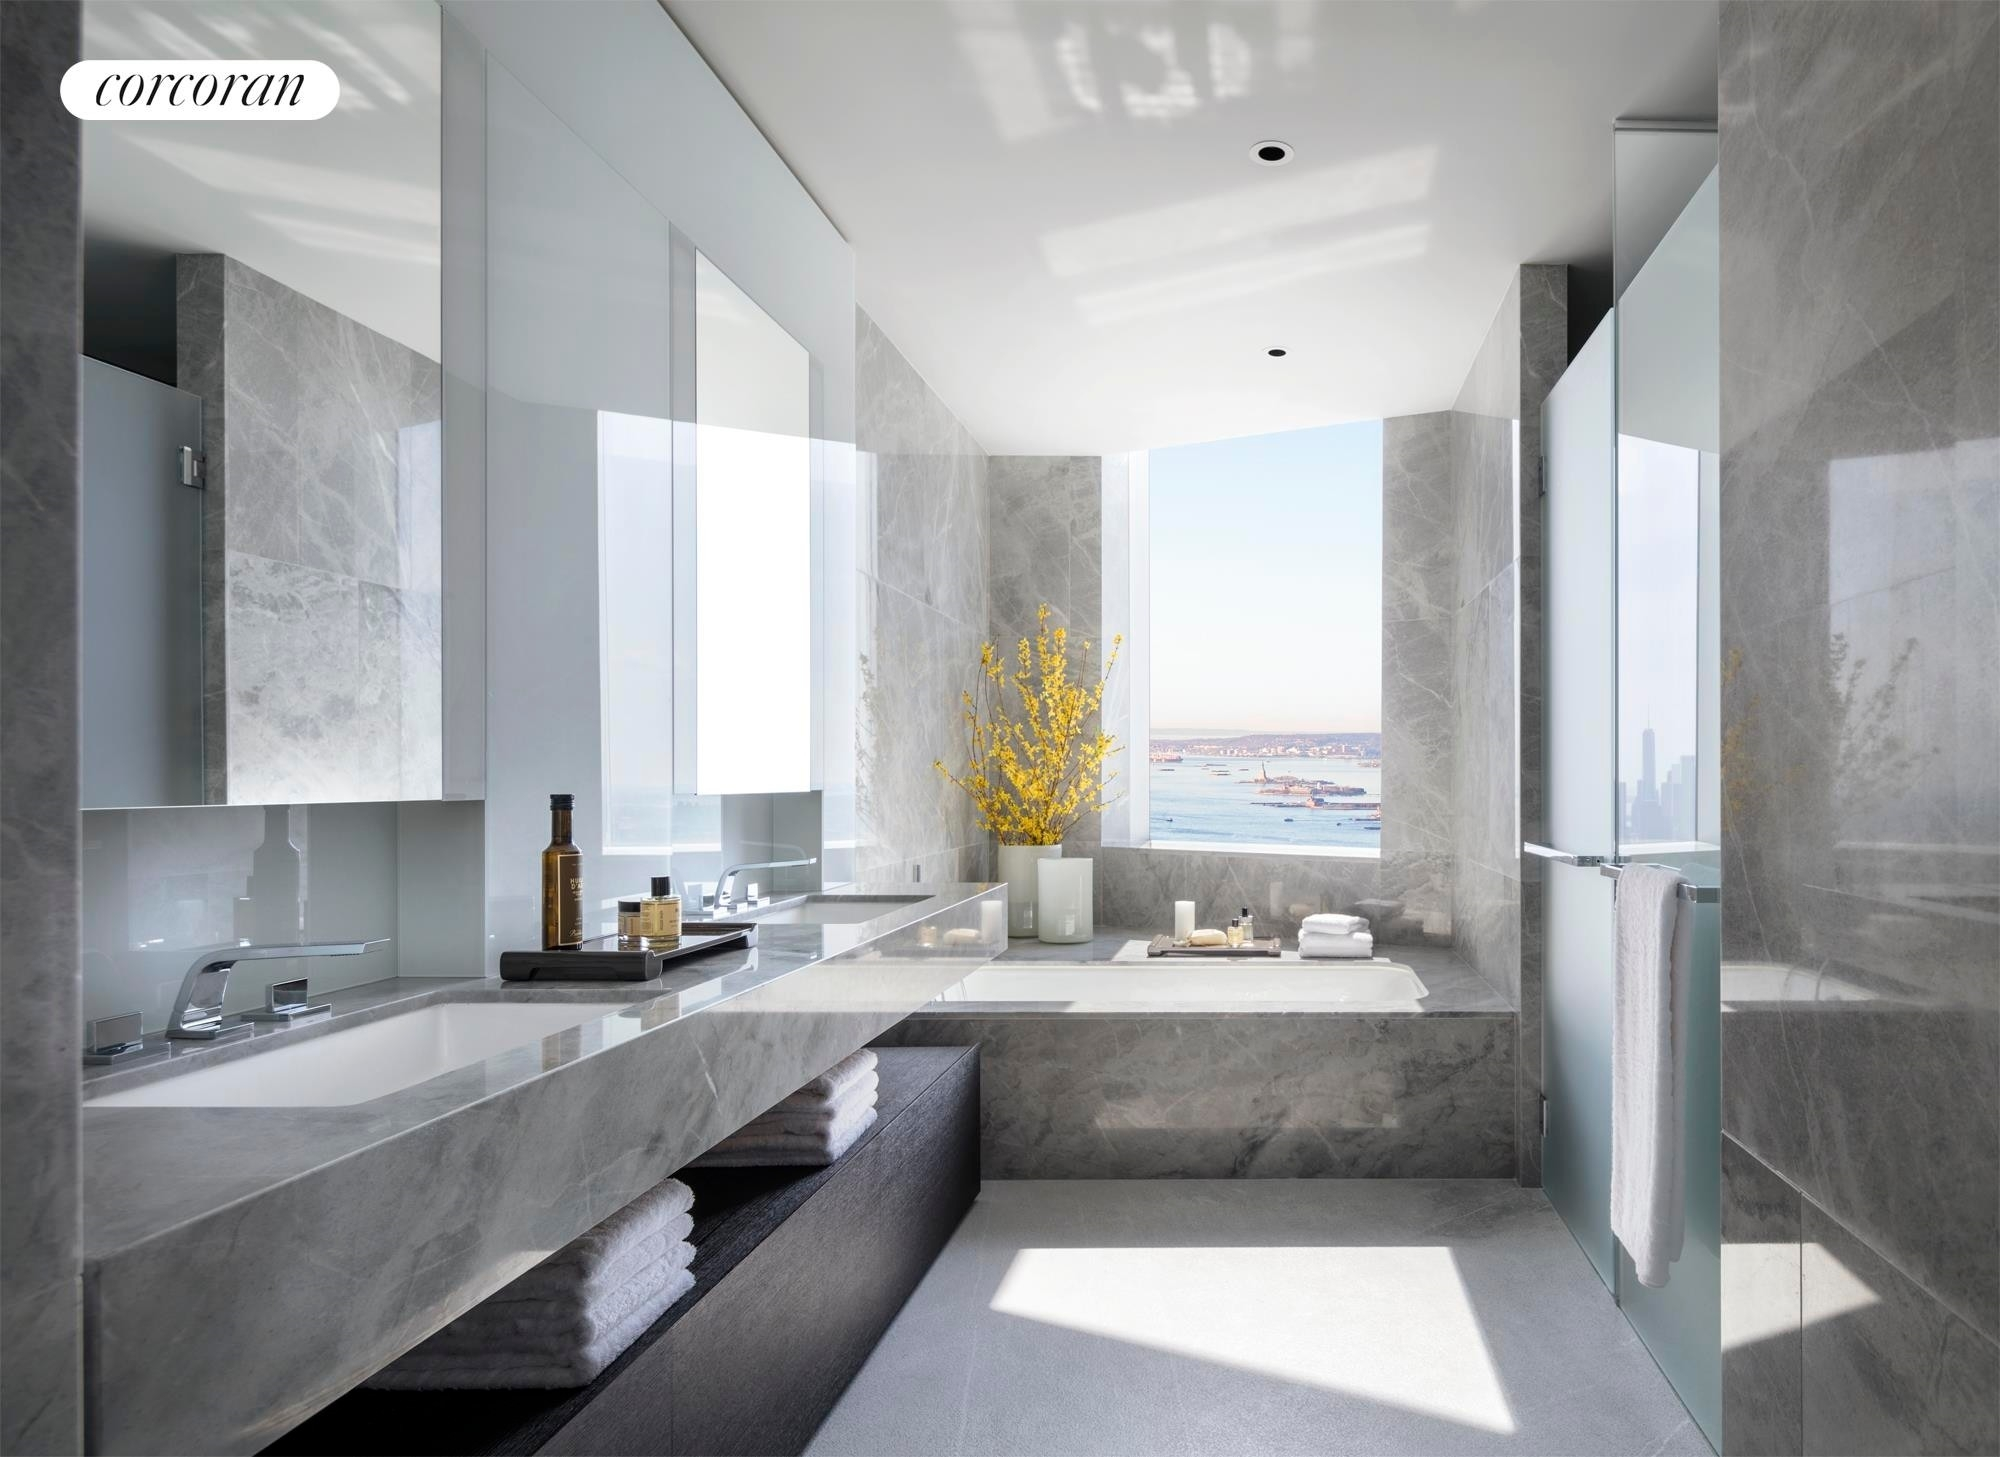 9. Condominiums for Sale at 15 Hudson Yards, 75B Hudson Yards, New York, NY 10001